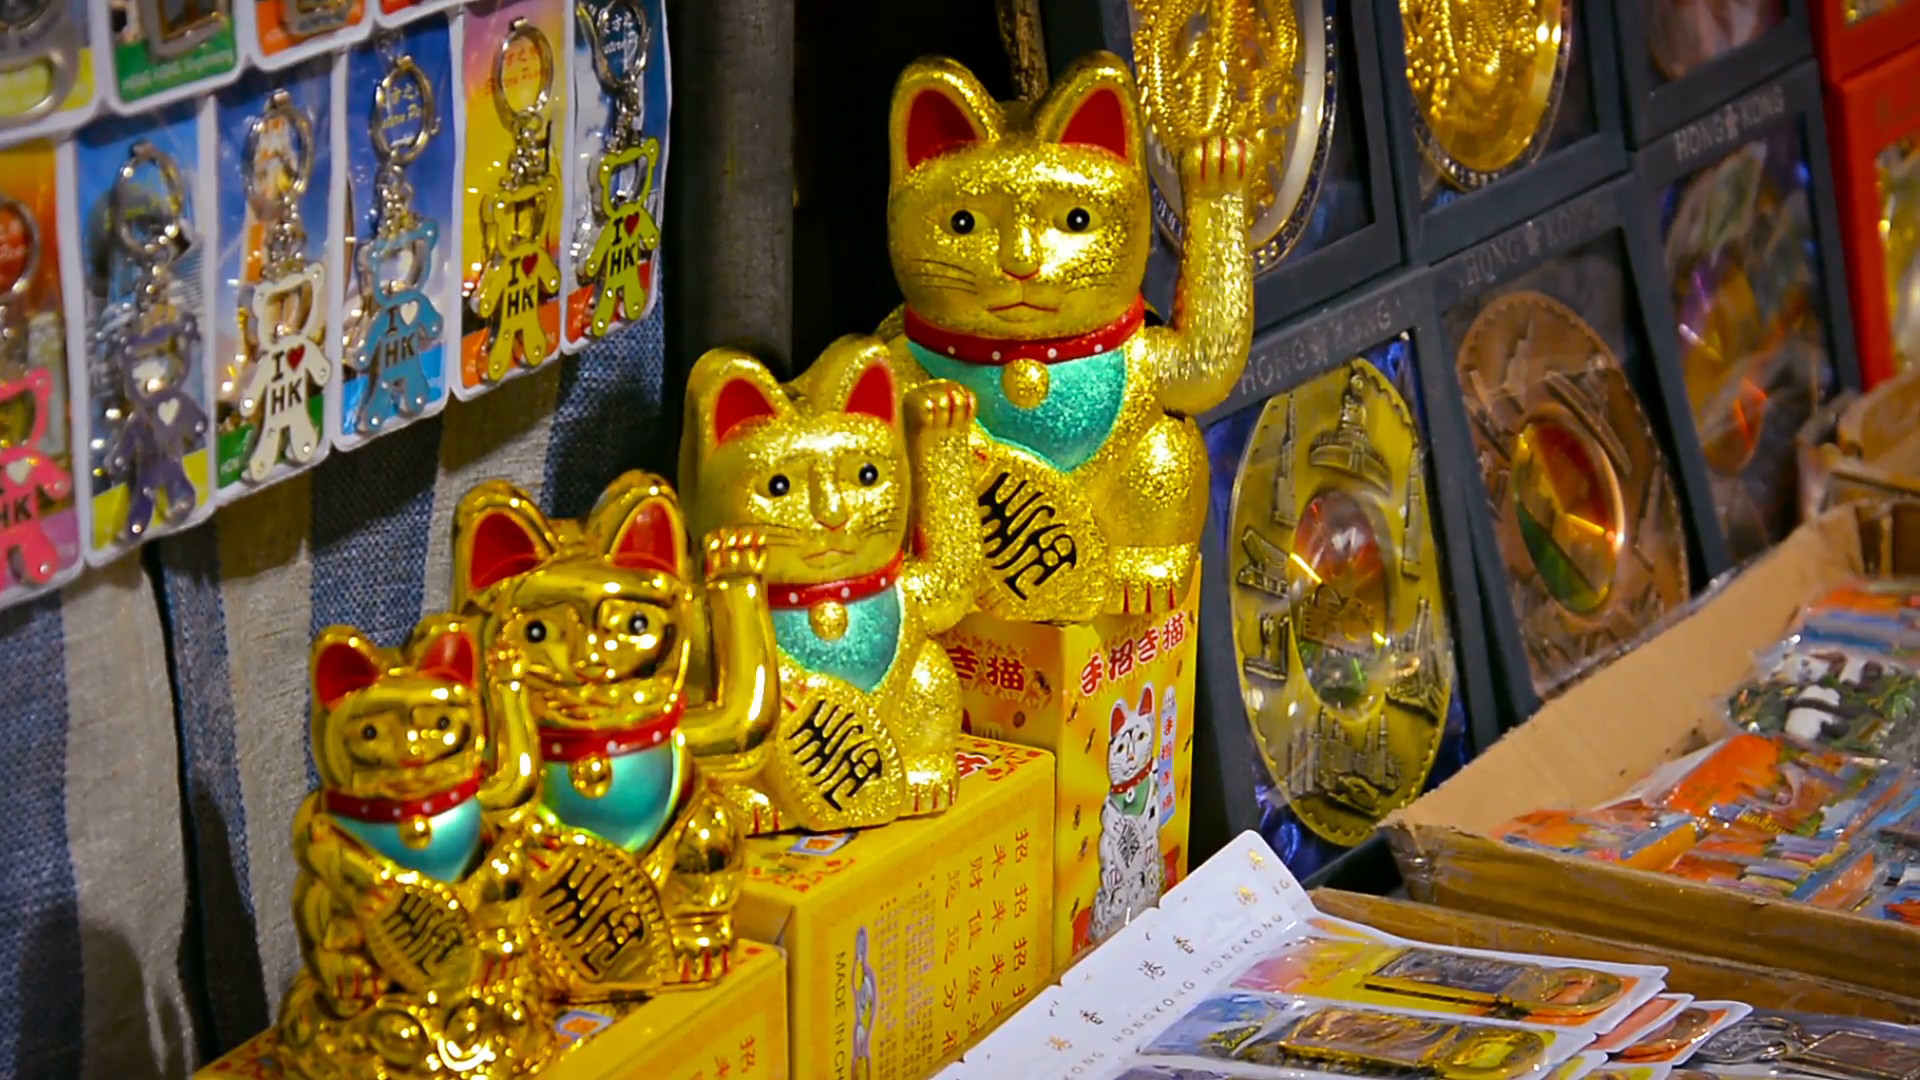 1920x1080 Japanese lucky cat statues. with their perpetual waving arms. for sale at a  souvenir shop. amongst other collectibles. Stock Video Footage -  Storyblocks ...